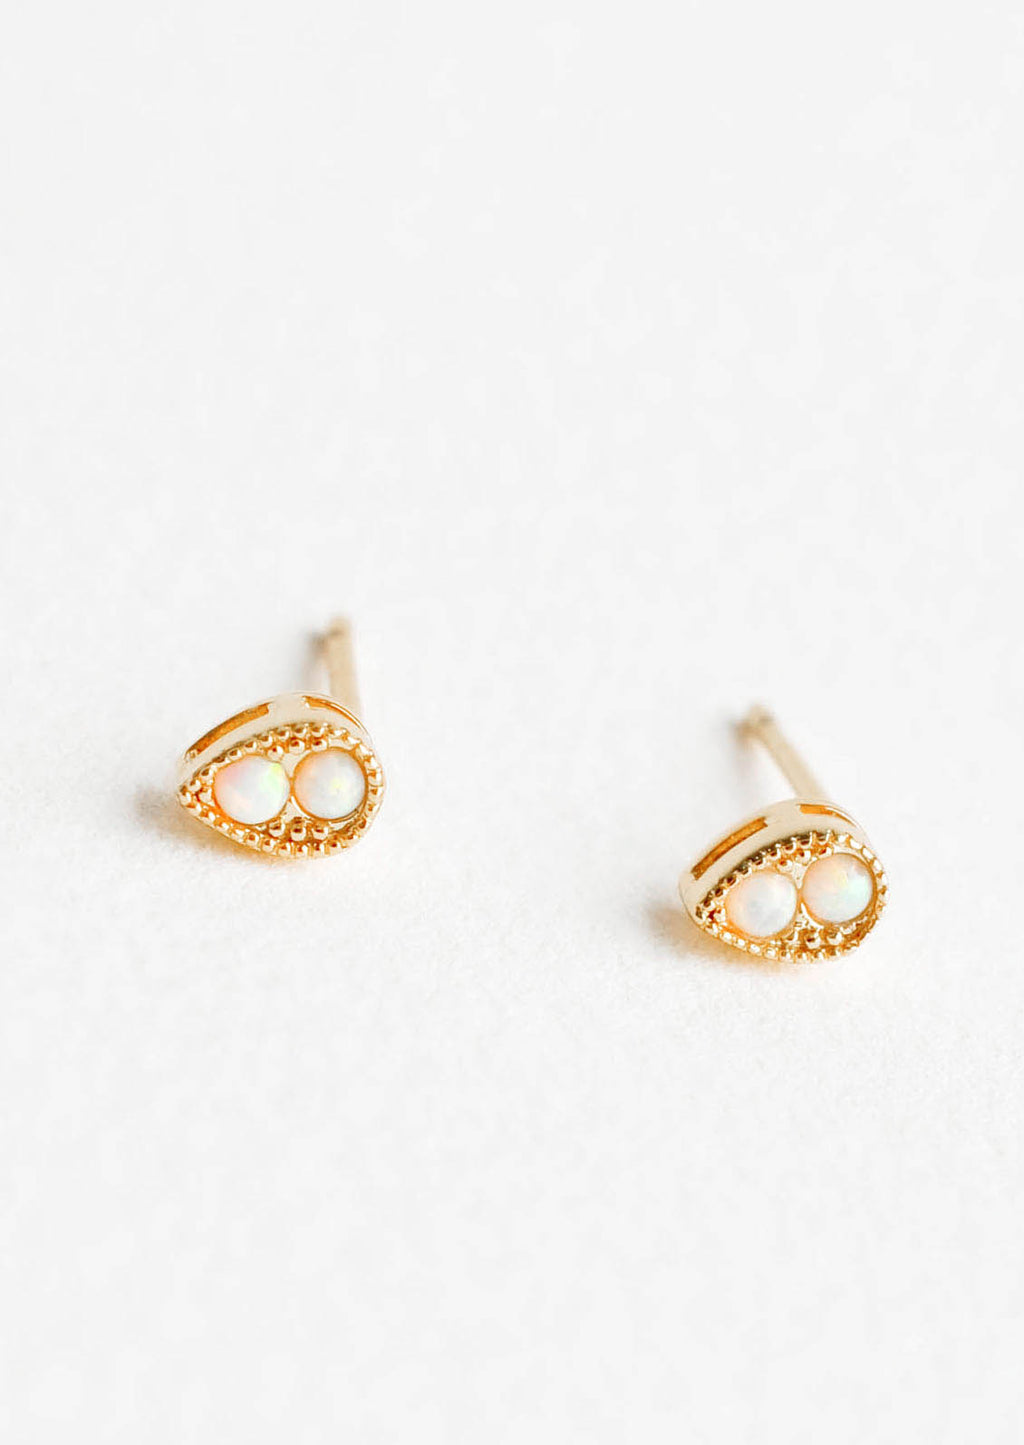 Teardrop: Teardrop shaped stud earrings in gold finish, with two small round opal stones inset.